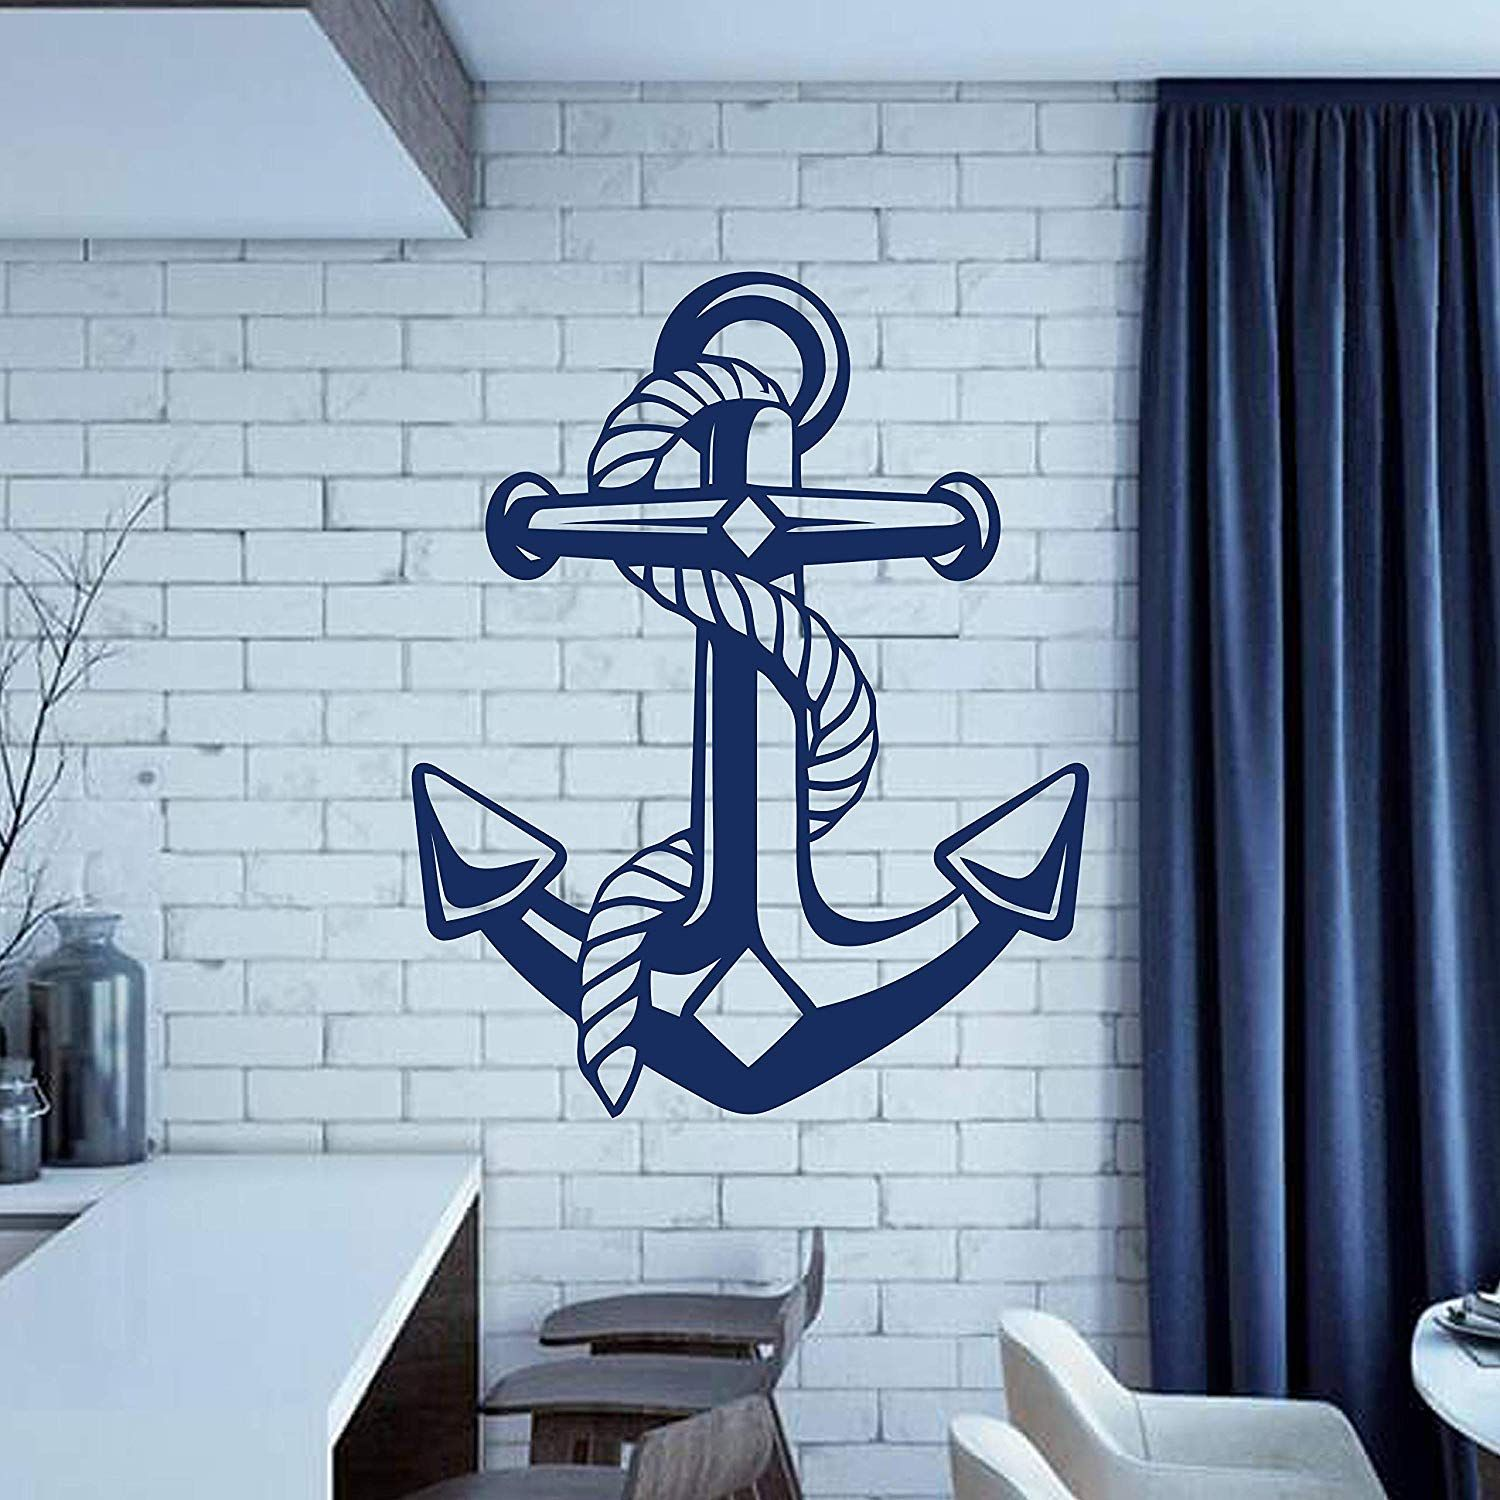 Wall Decals Anchor Nautical Wall Decal Sea Ocean Wall Decal Stickers Living Room Bedroom Kids Room Nautical Wall Decal Nautical Nursery Wall Anchor Wall Decor #sticker #for #living #room